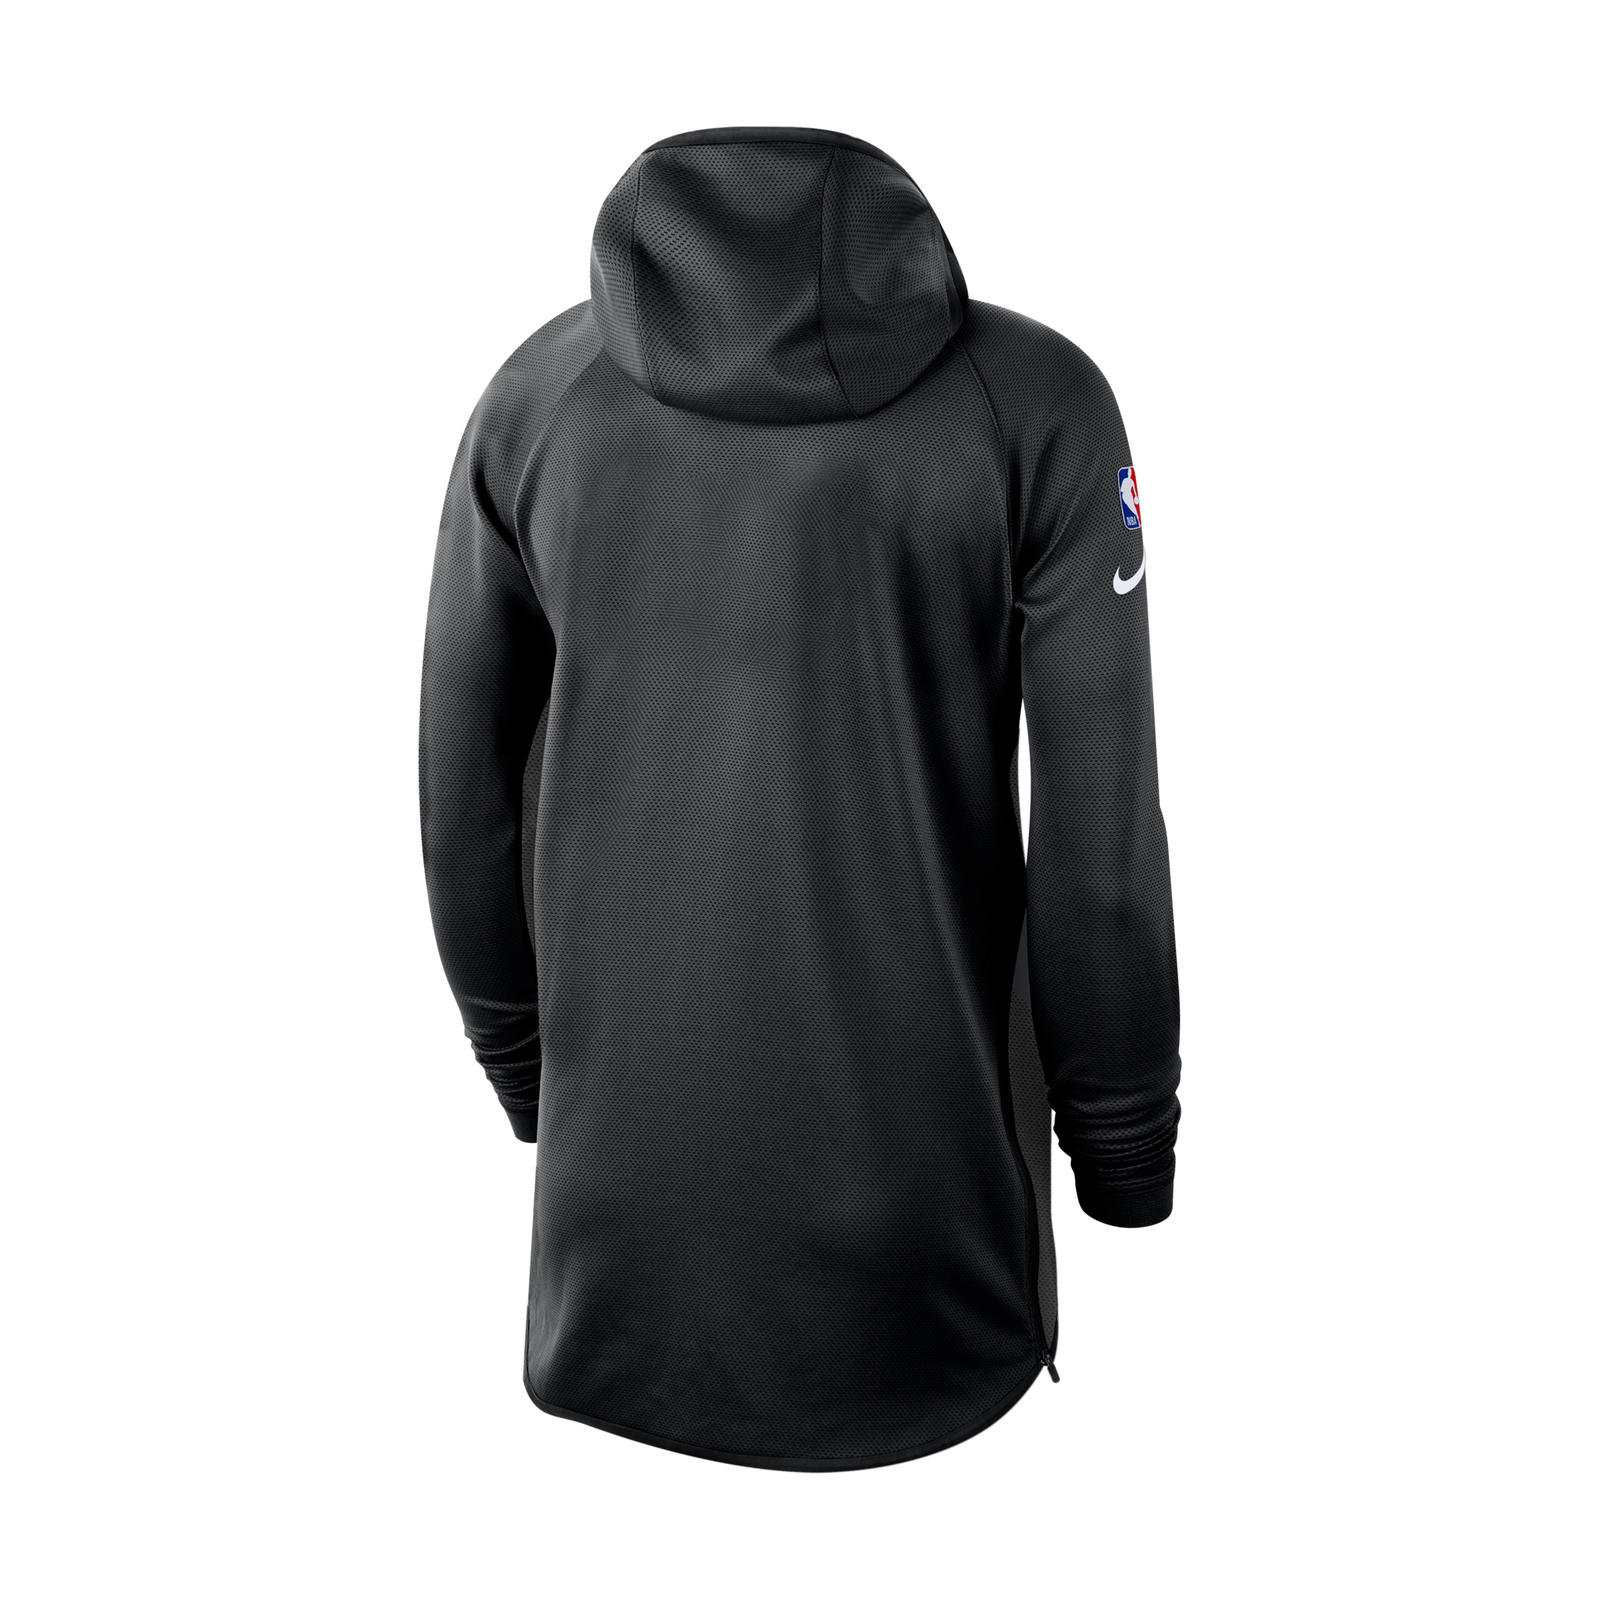 Nike NBA Earned Edition Showtime Hoodies 2019-20 Official Images 2